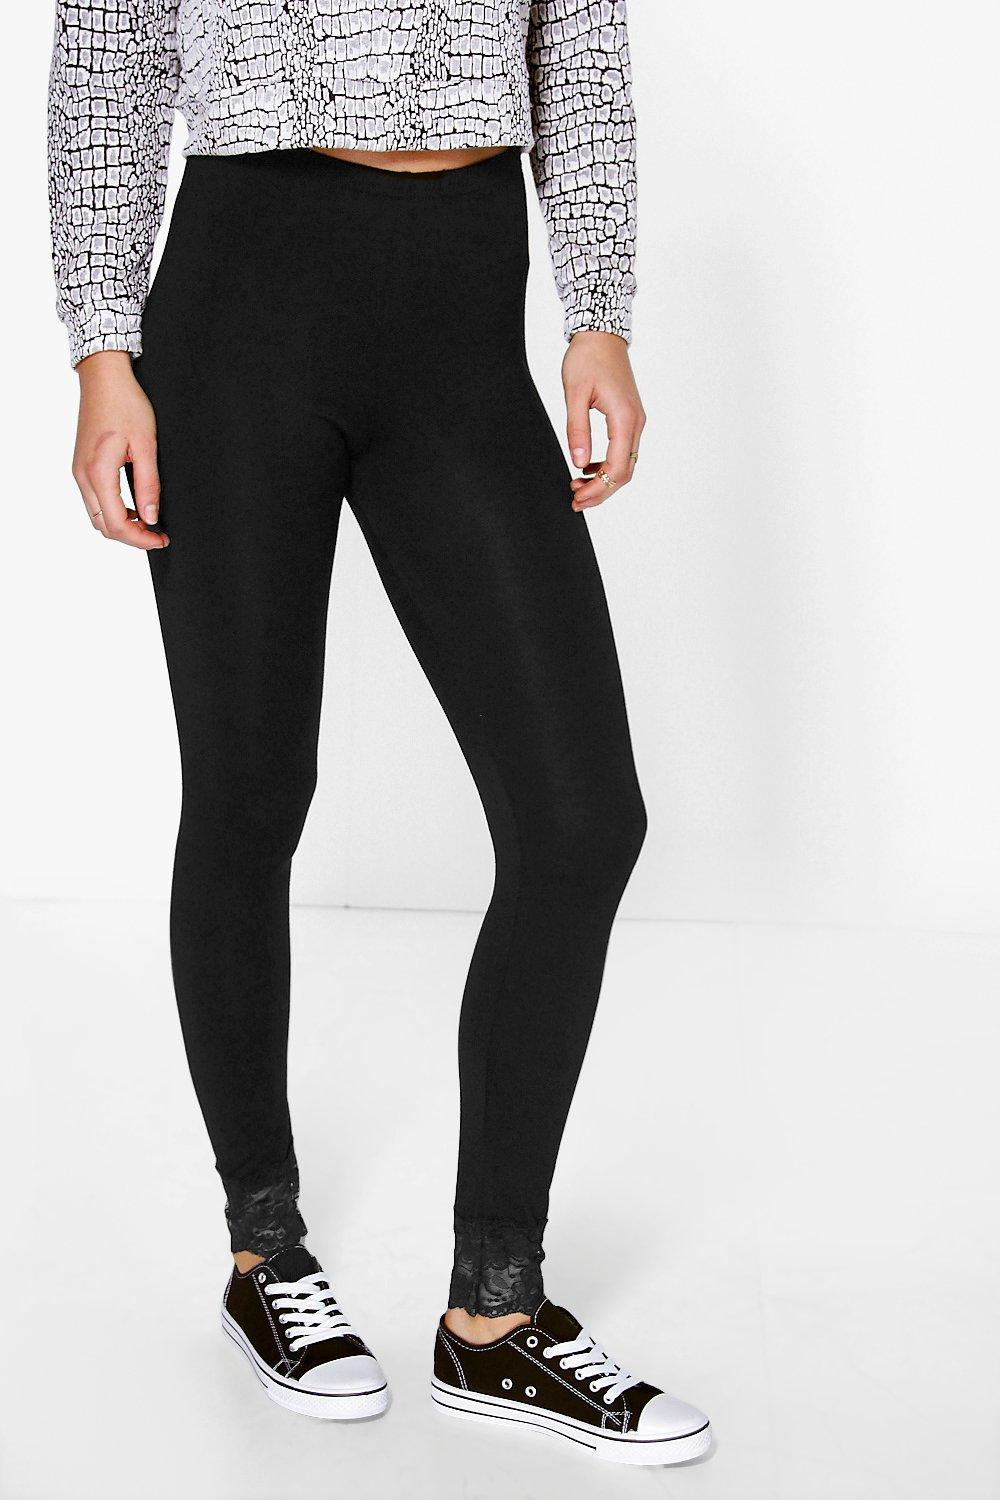 Amelie Lace Trim Basic Leggings